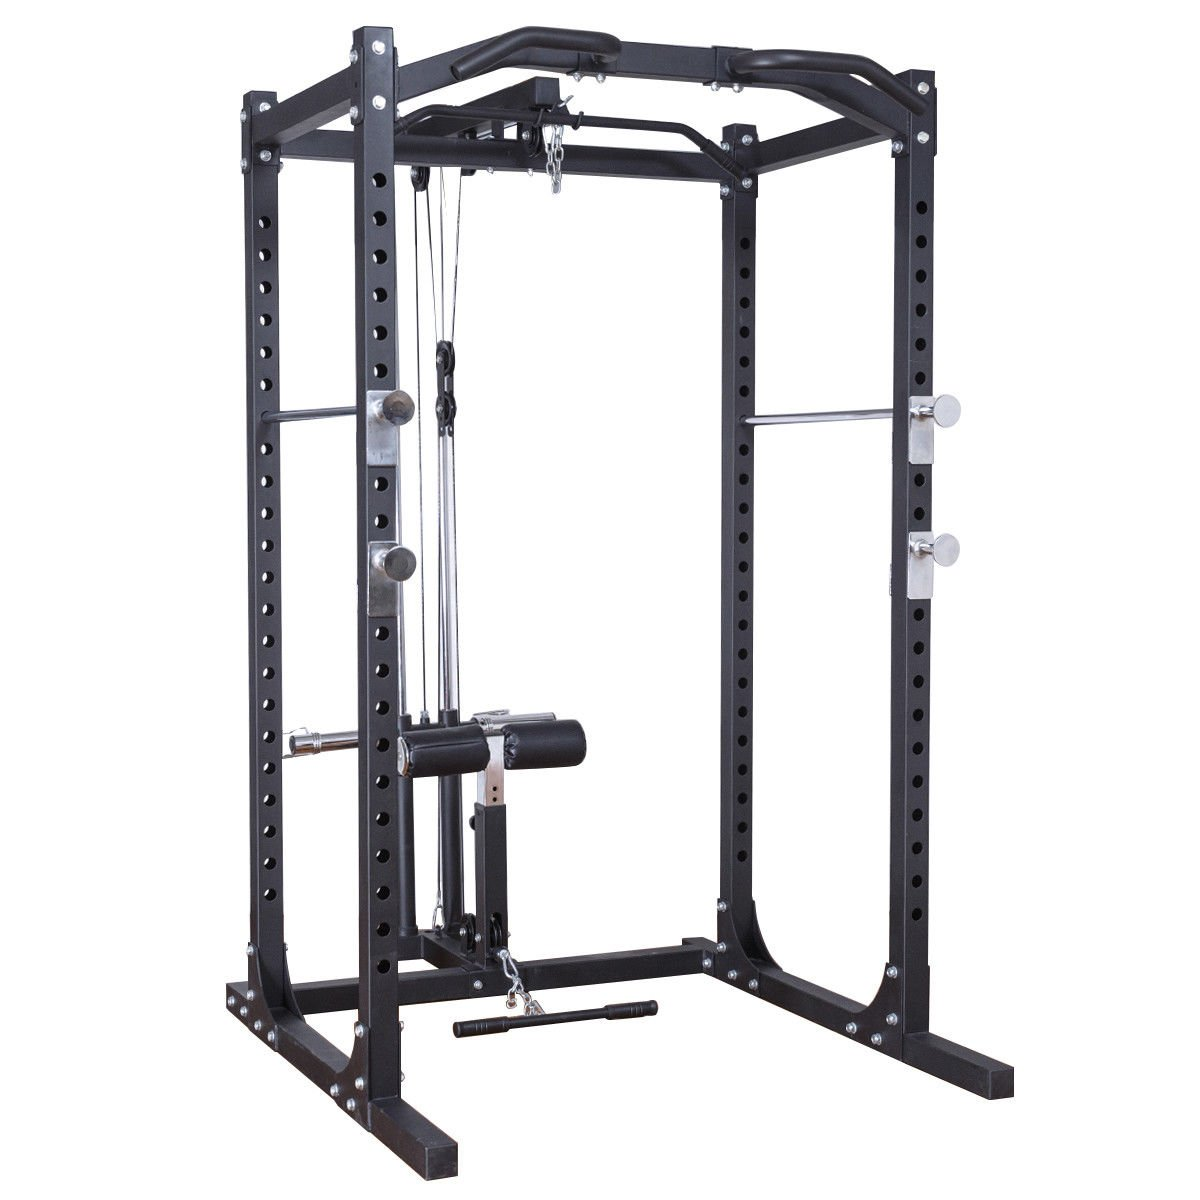 Goplus Fitness Power Rack w/ Lat Pull Attachment Squat Cage Equipment